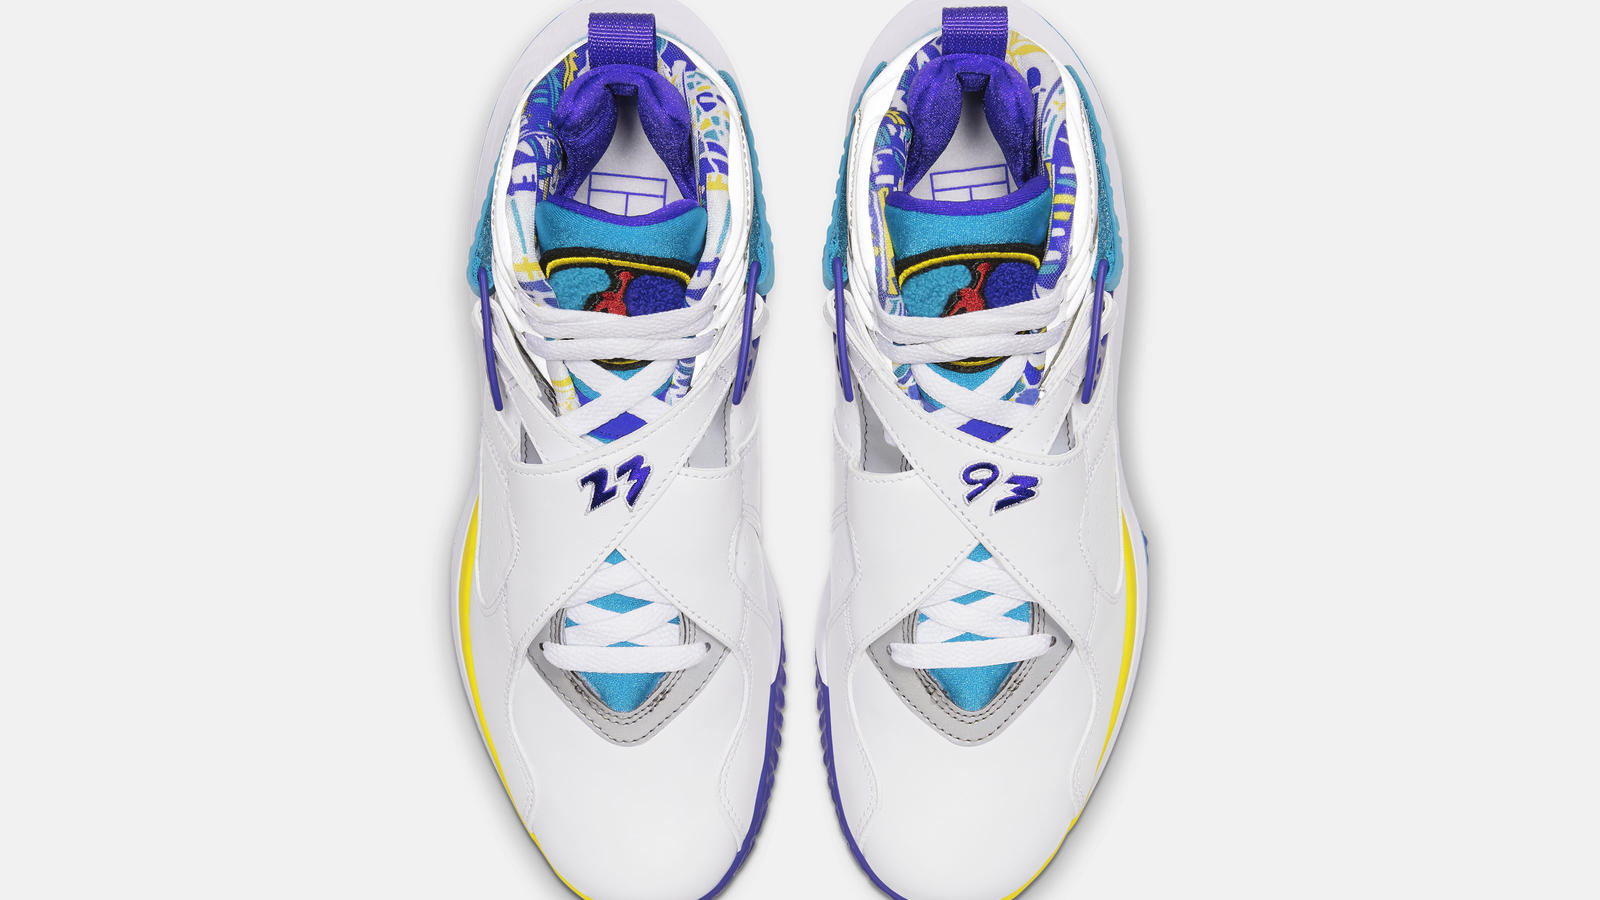 NikeCourt Air Zoom Zero x Air Jordan 8 Aqua Official Images and Release Date 2